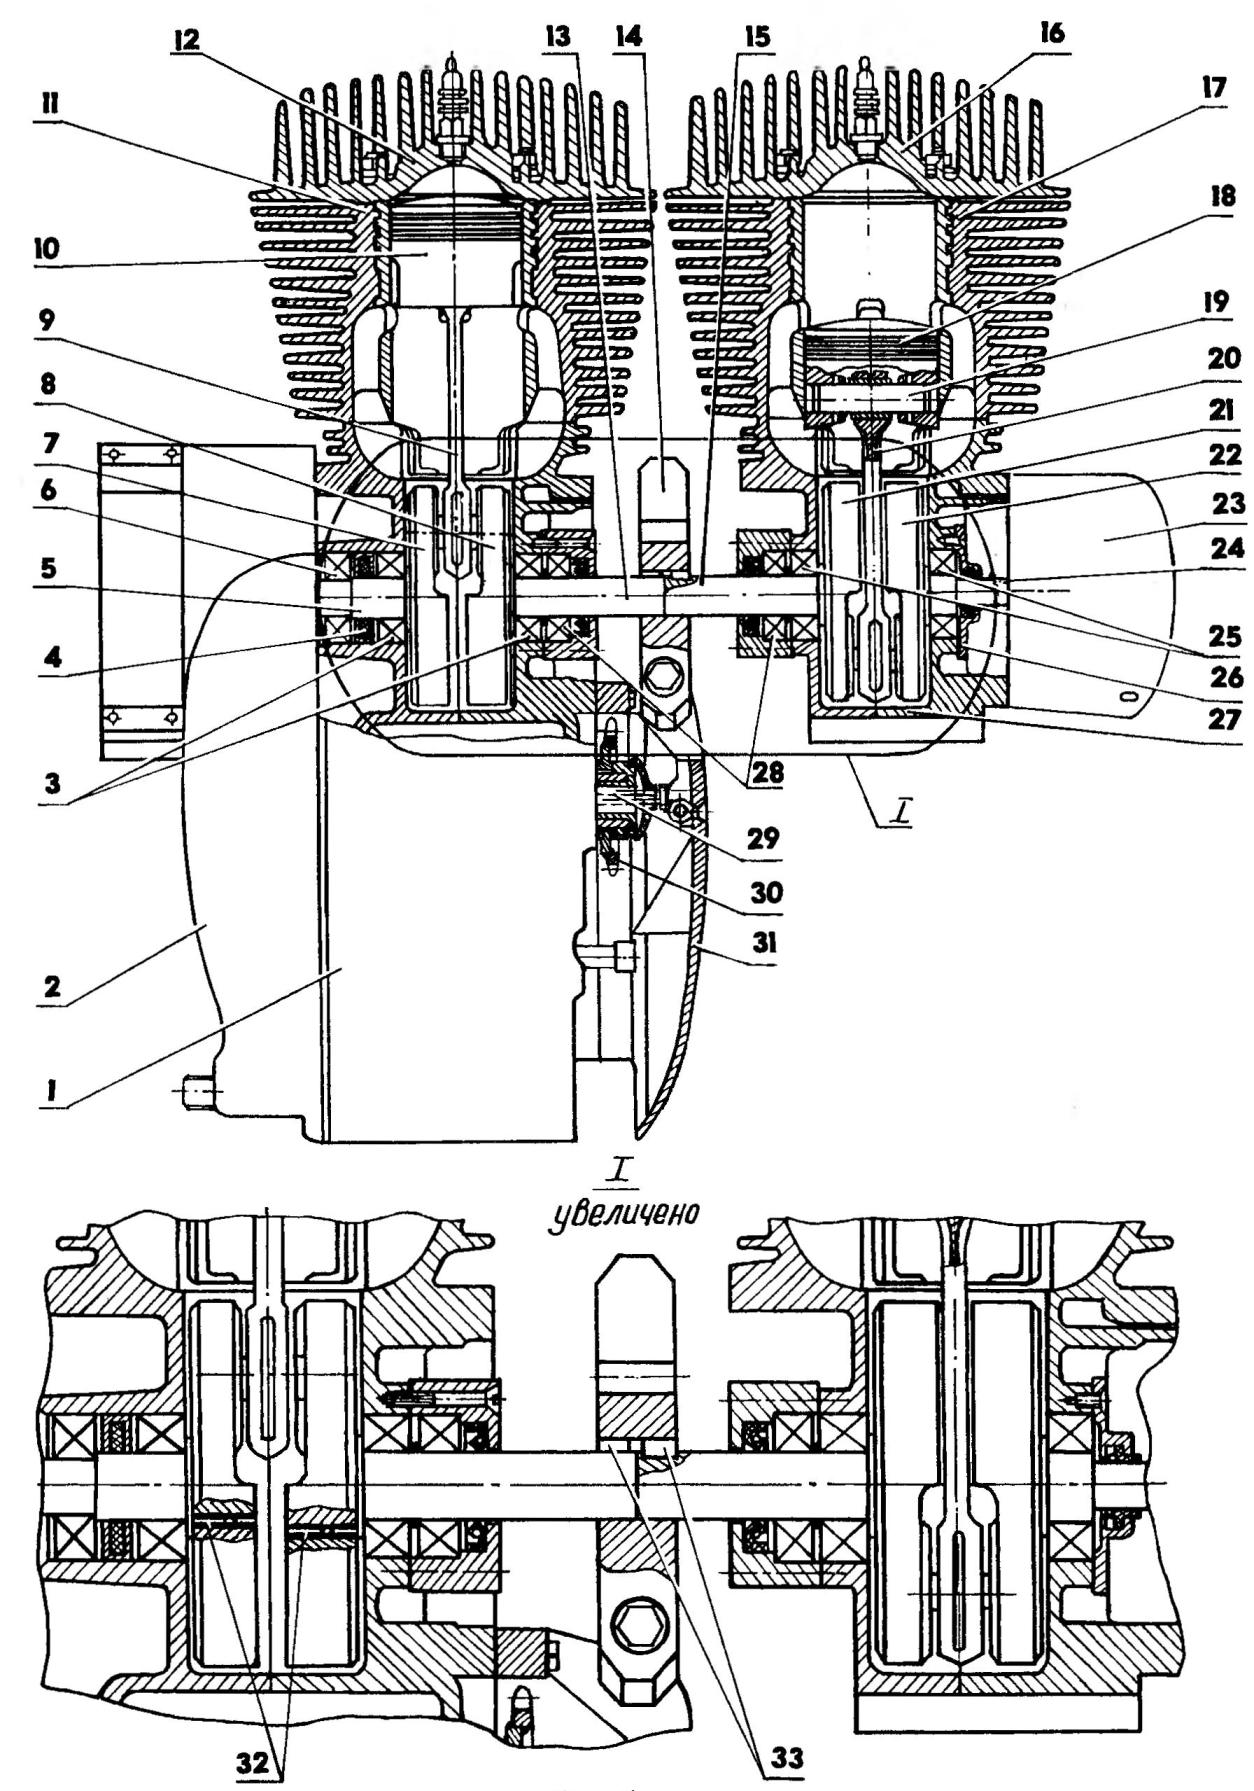 Section of the power plant of twin engines